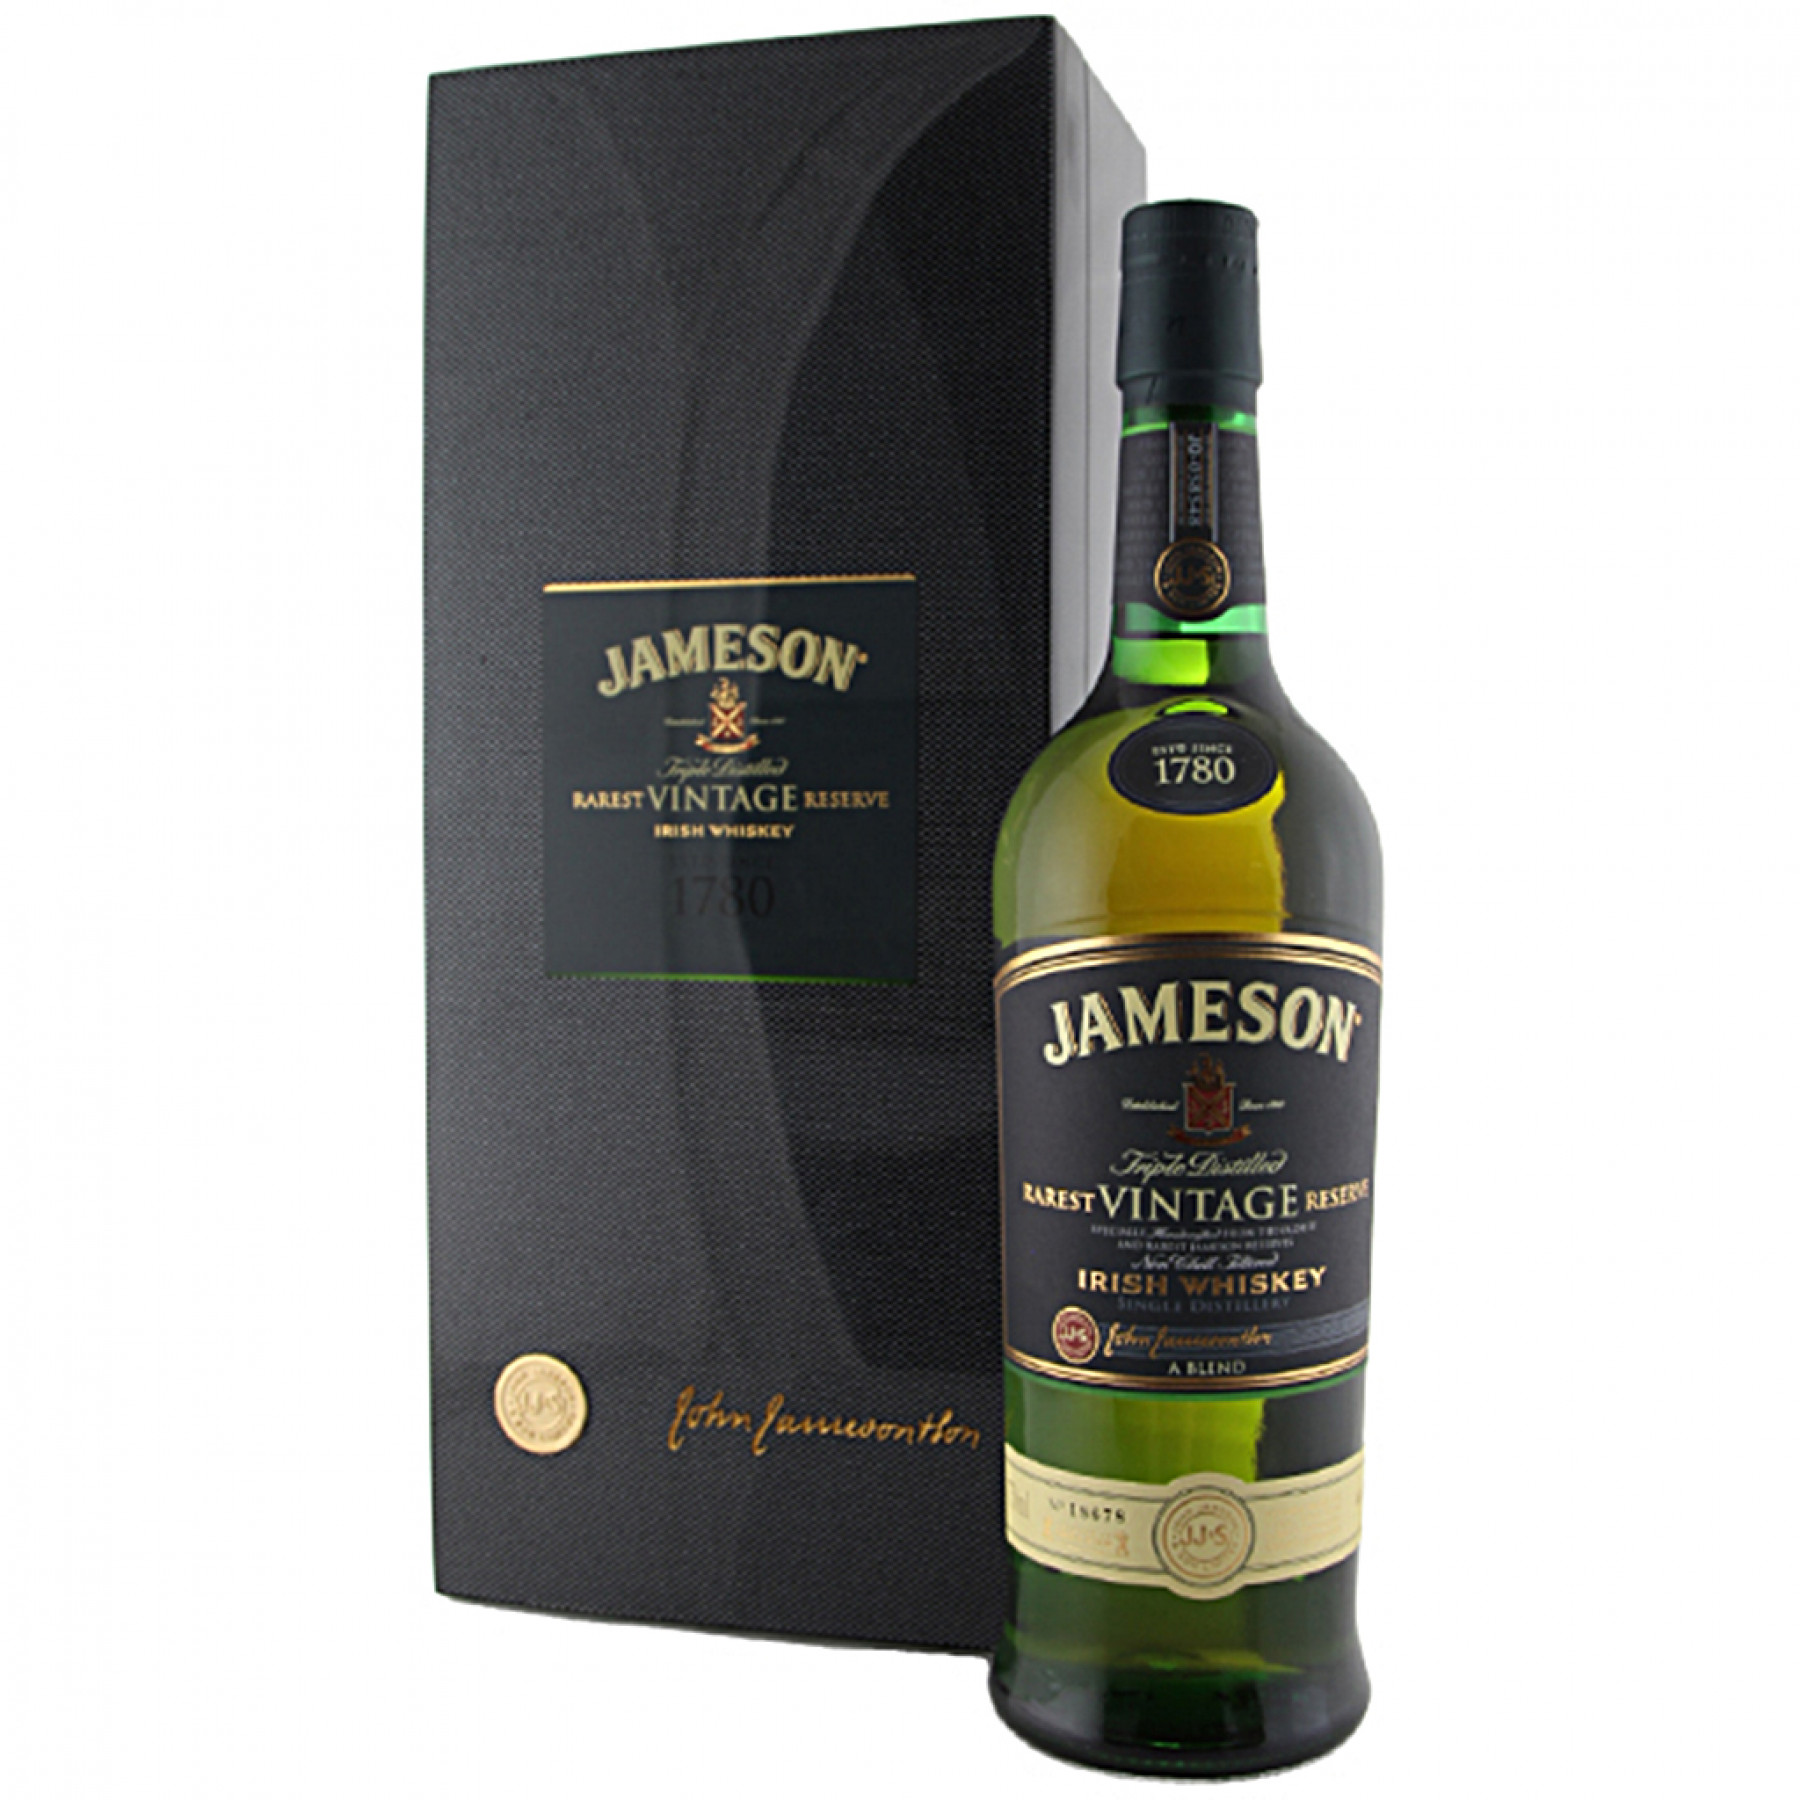 Jameson Rarest Vintage Reserve Blended Irish Whiskey, Ireland 750ml